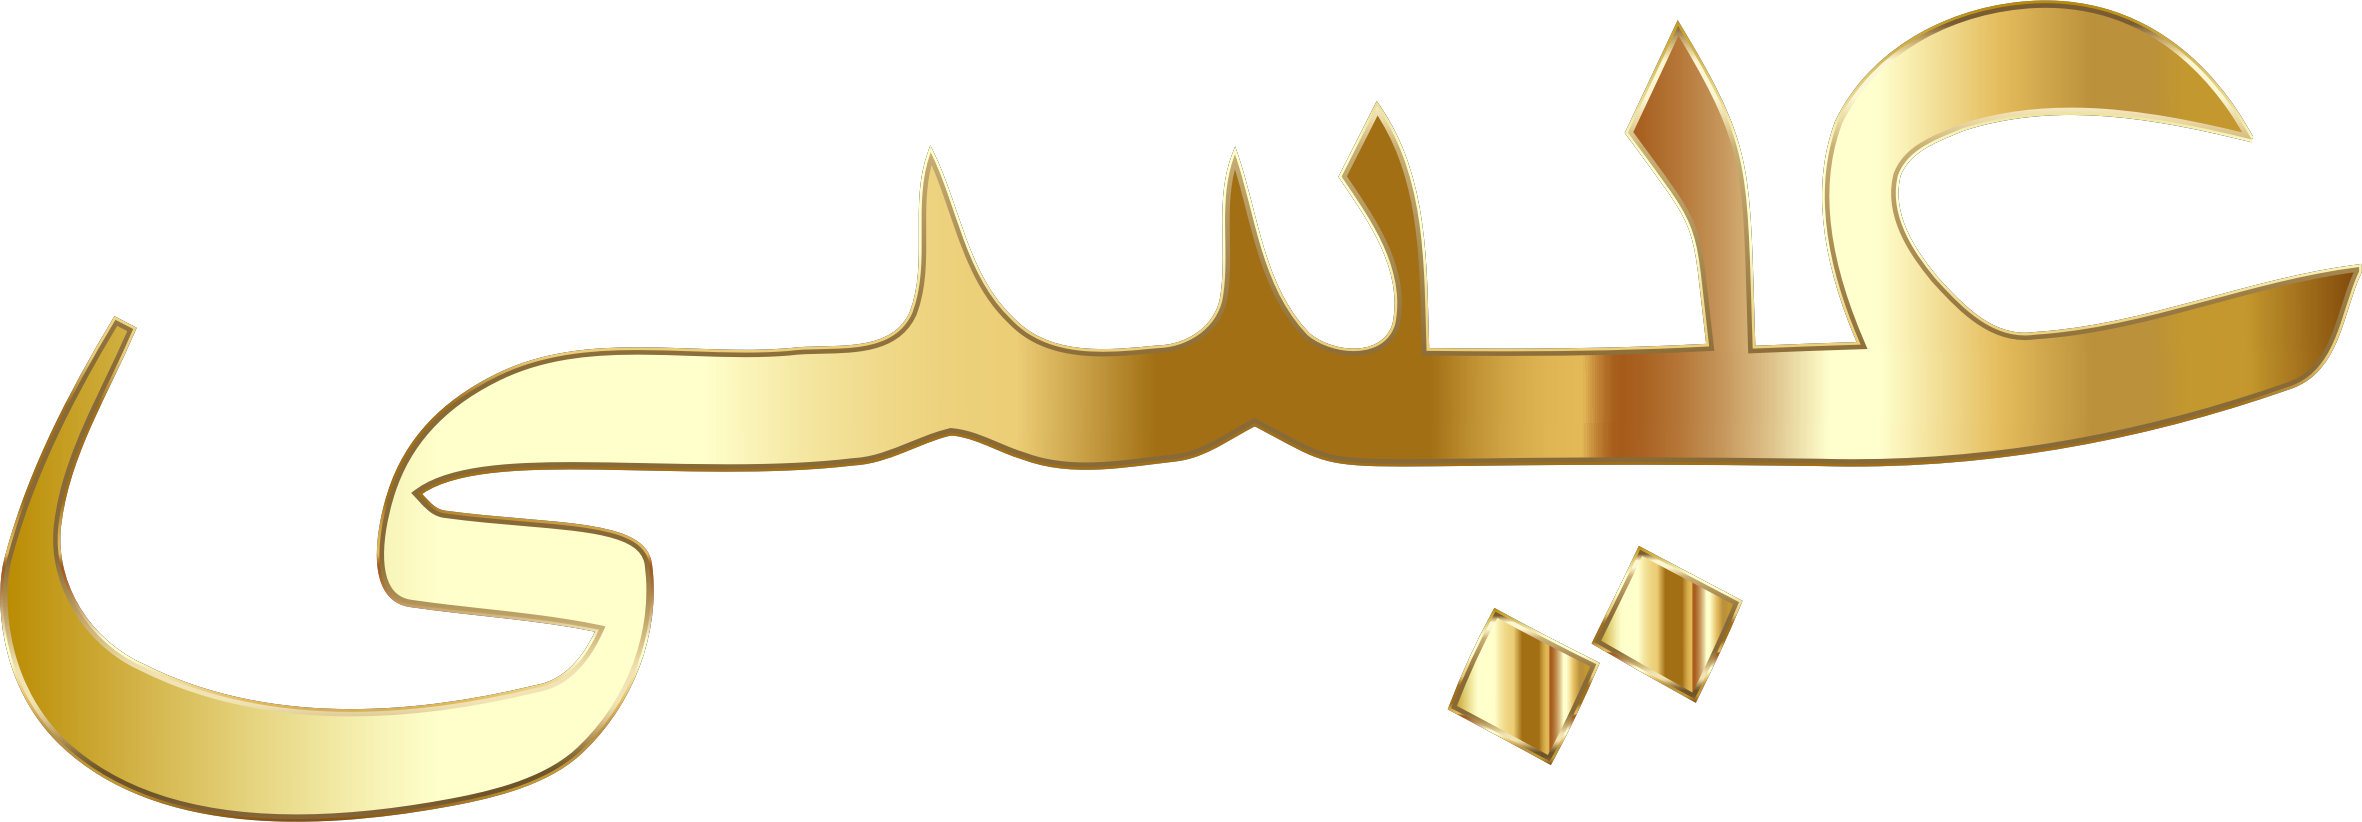 Jesus in arabic gold. Faith clipart calligraphy